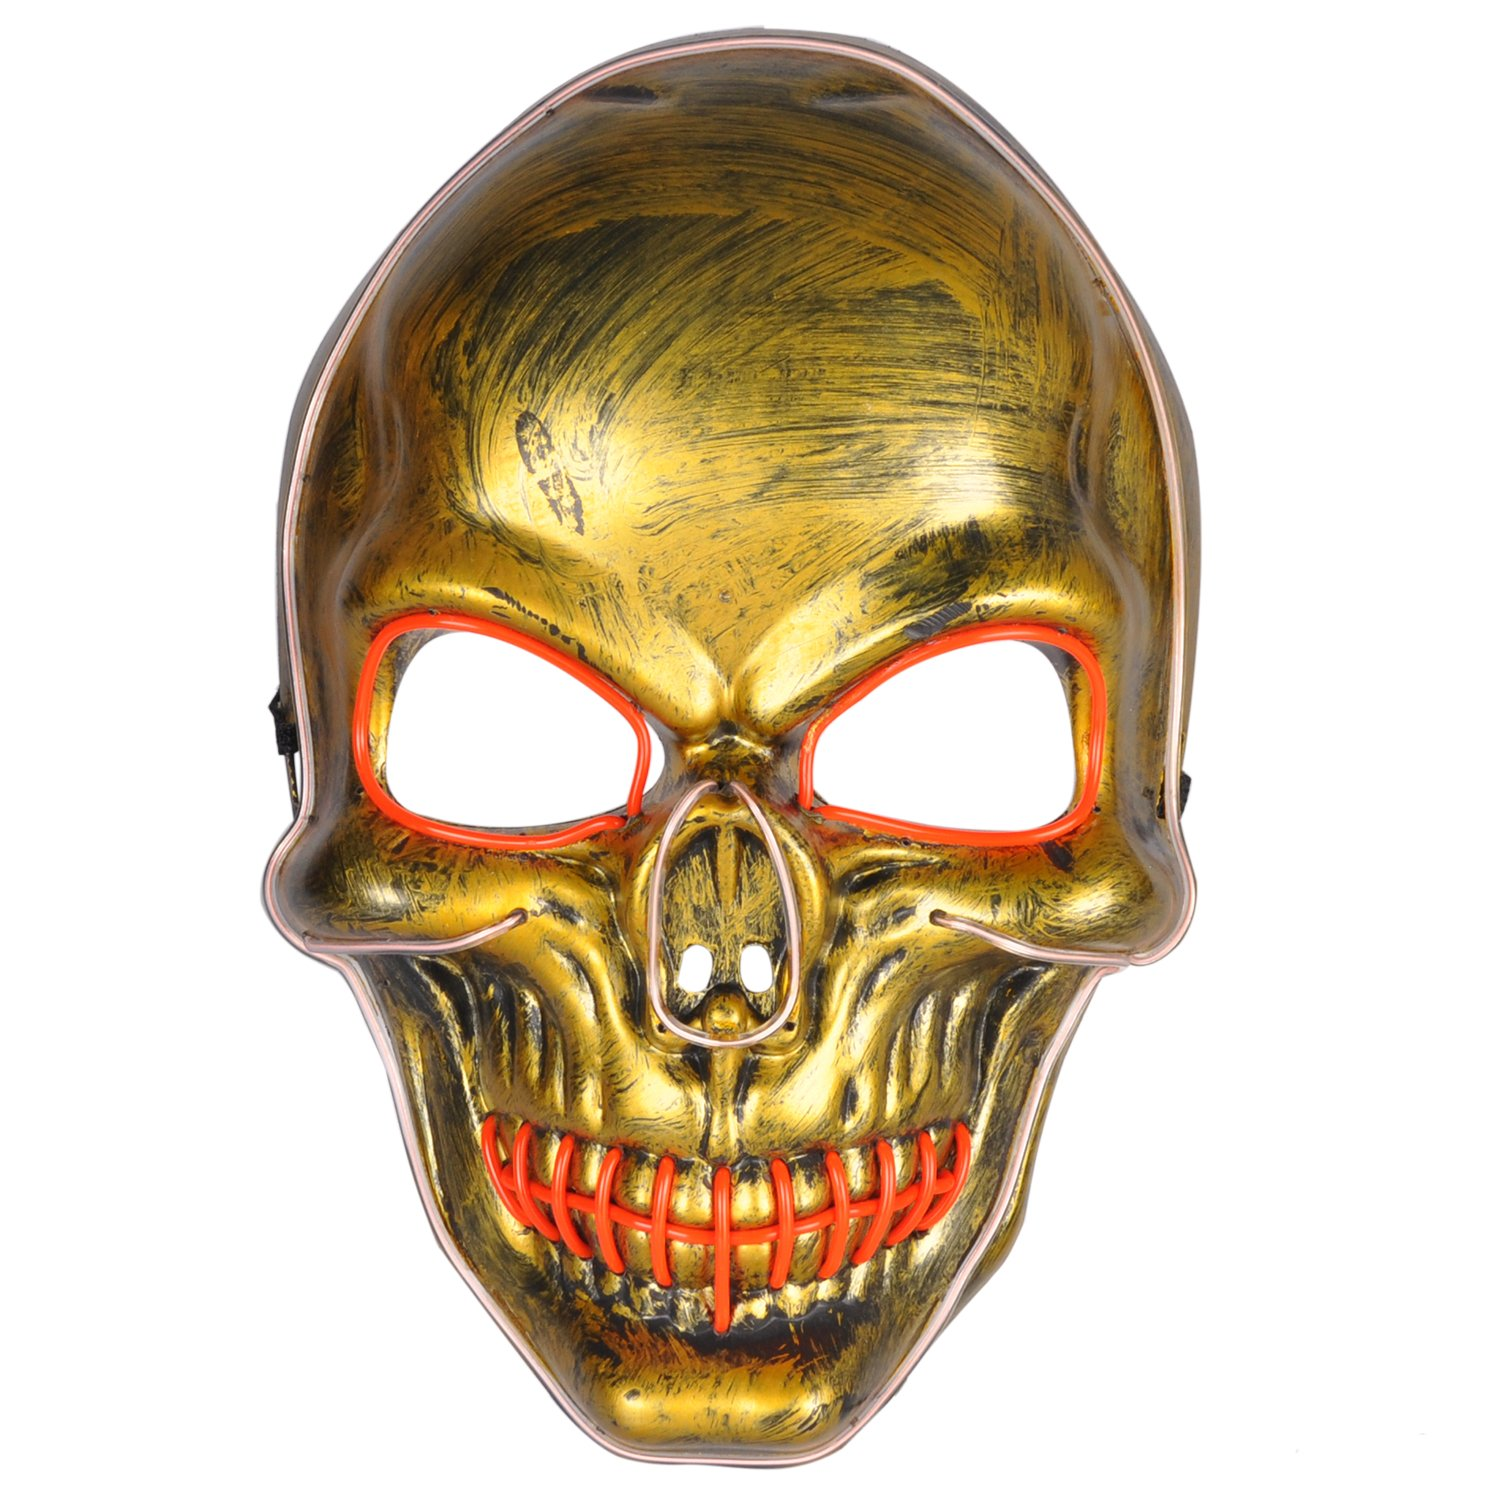 Light up Skull Mask LED Glowing for Halloween Rave Costume Cosplay Party